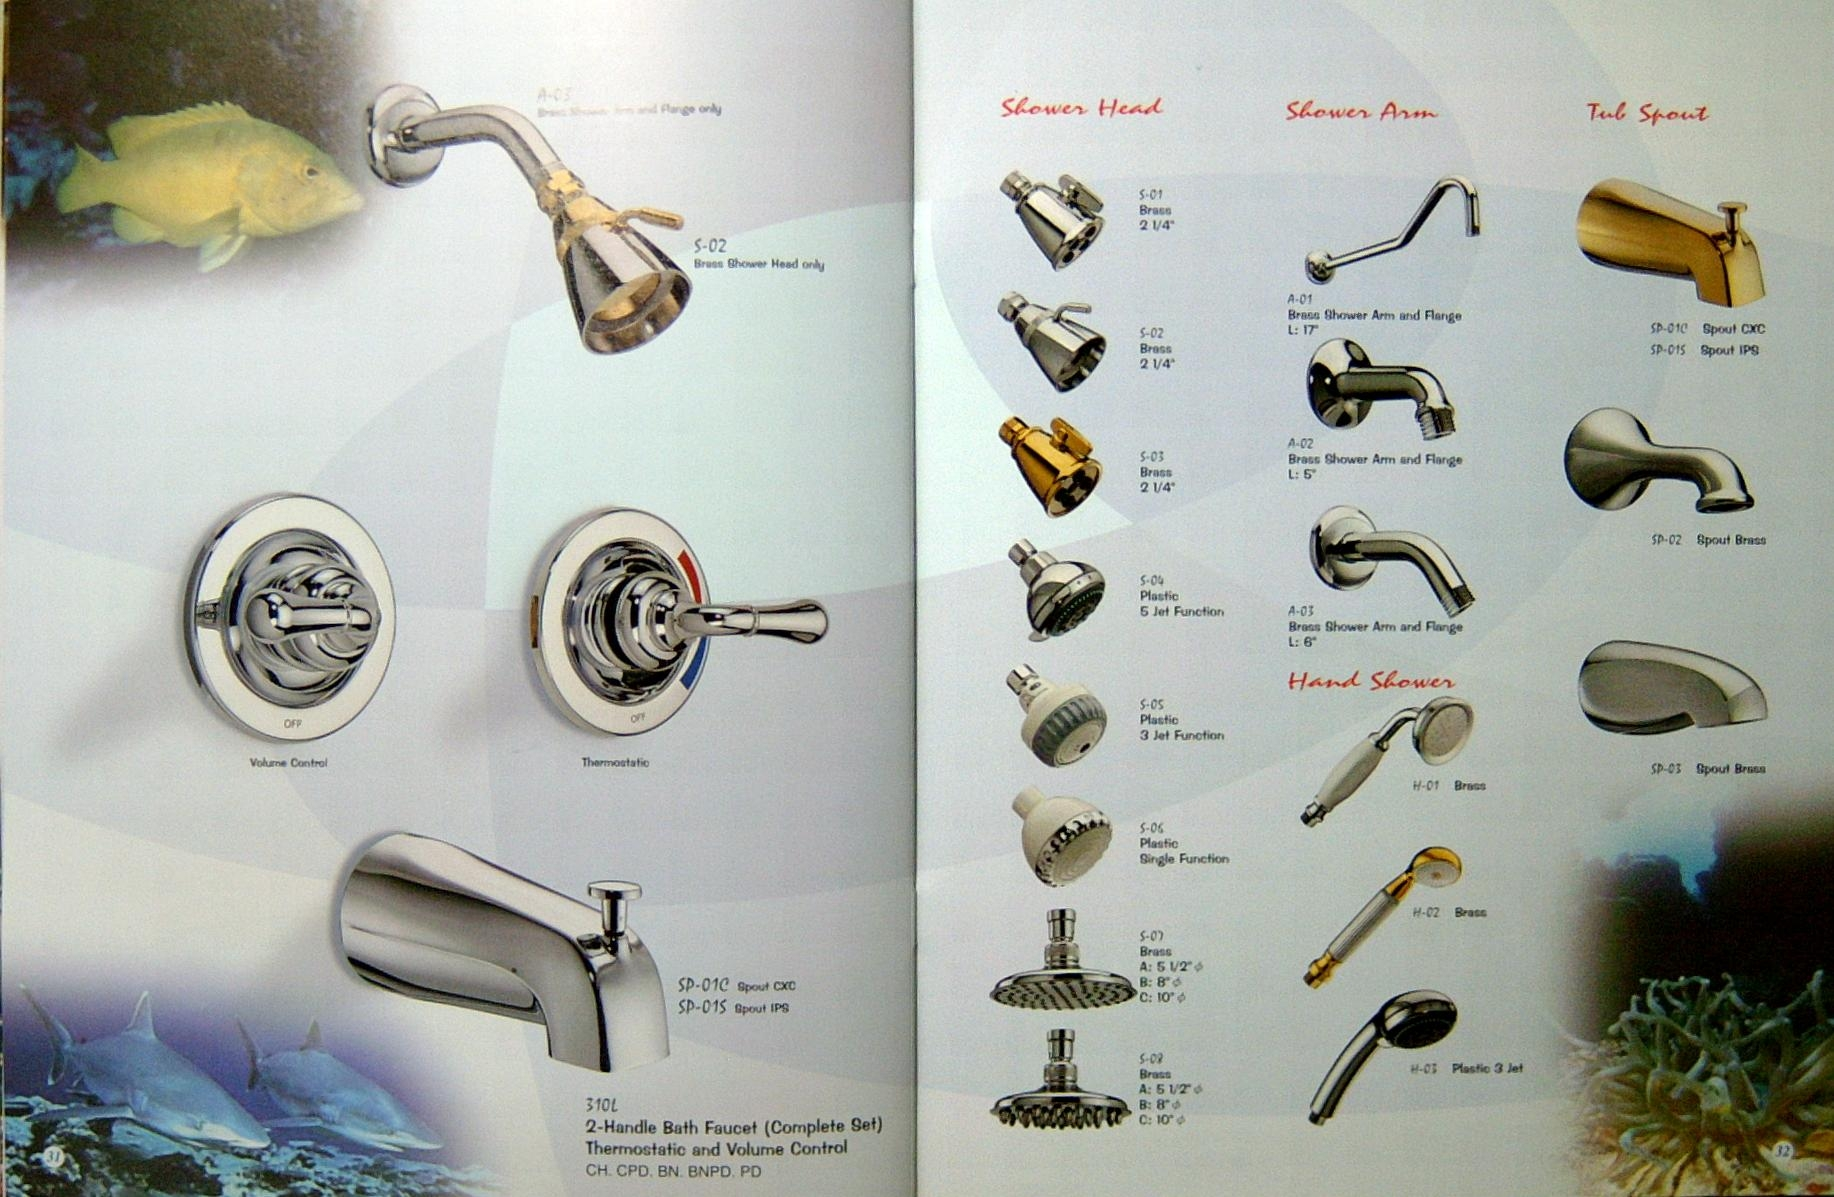 Ideas, different types of single handle shower faucets different types of single handle shower faucets 46 different shower valve types different types of shower valves 1834 x 1197  .